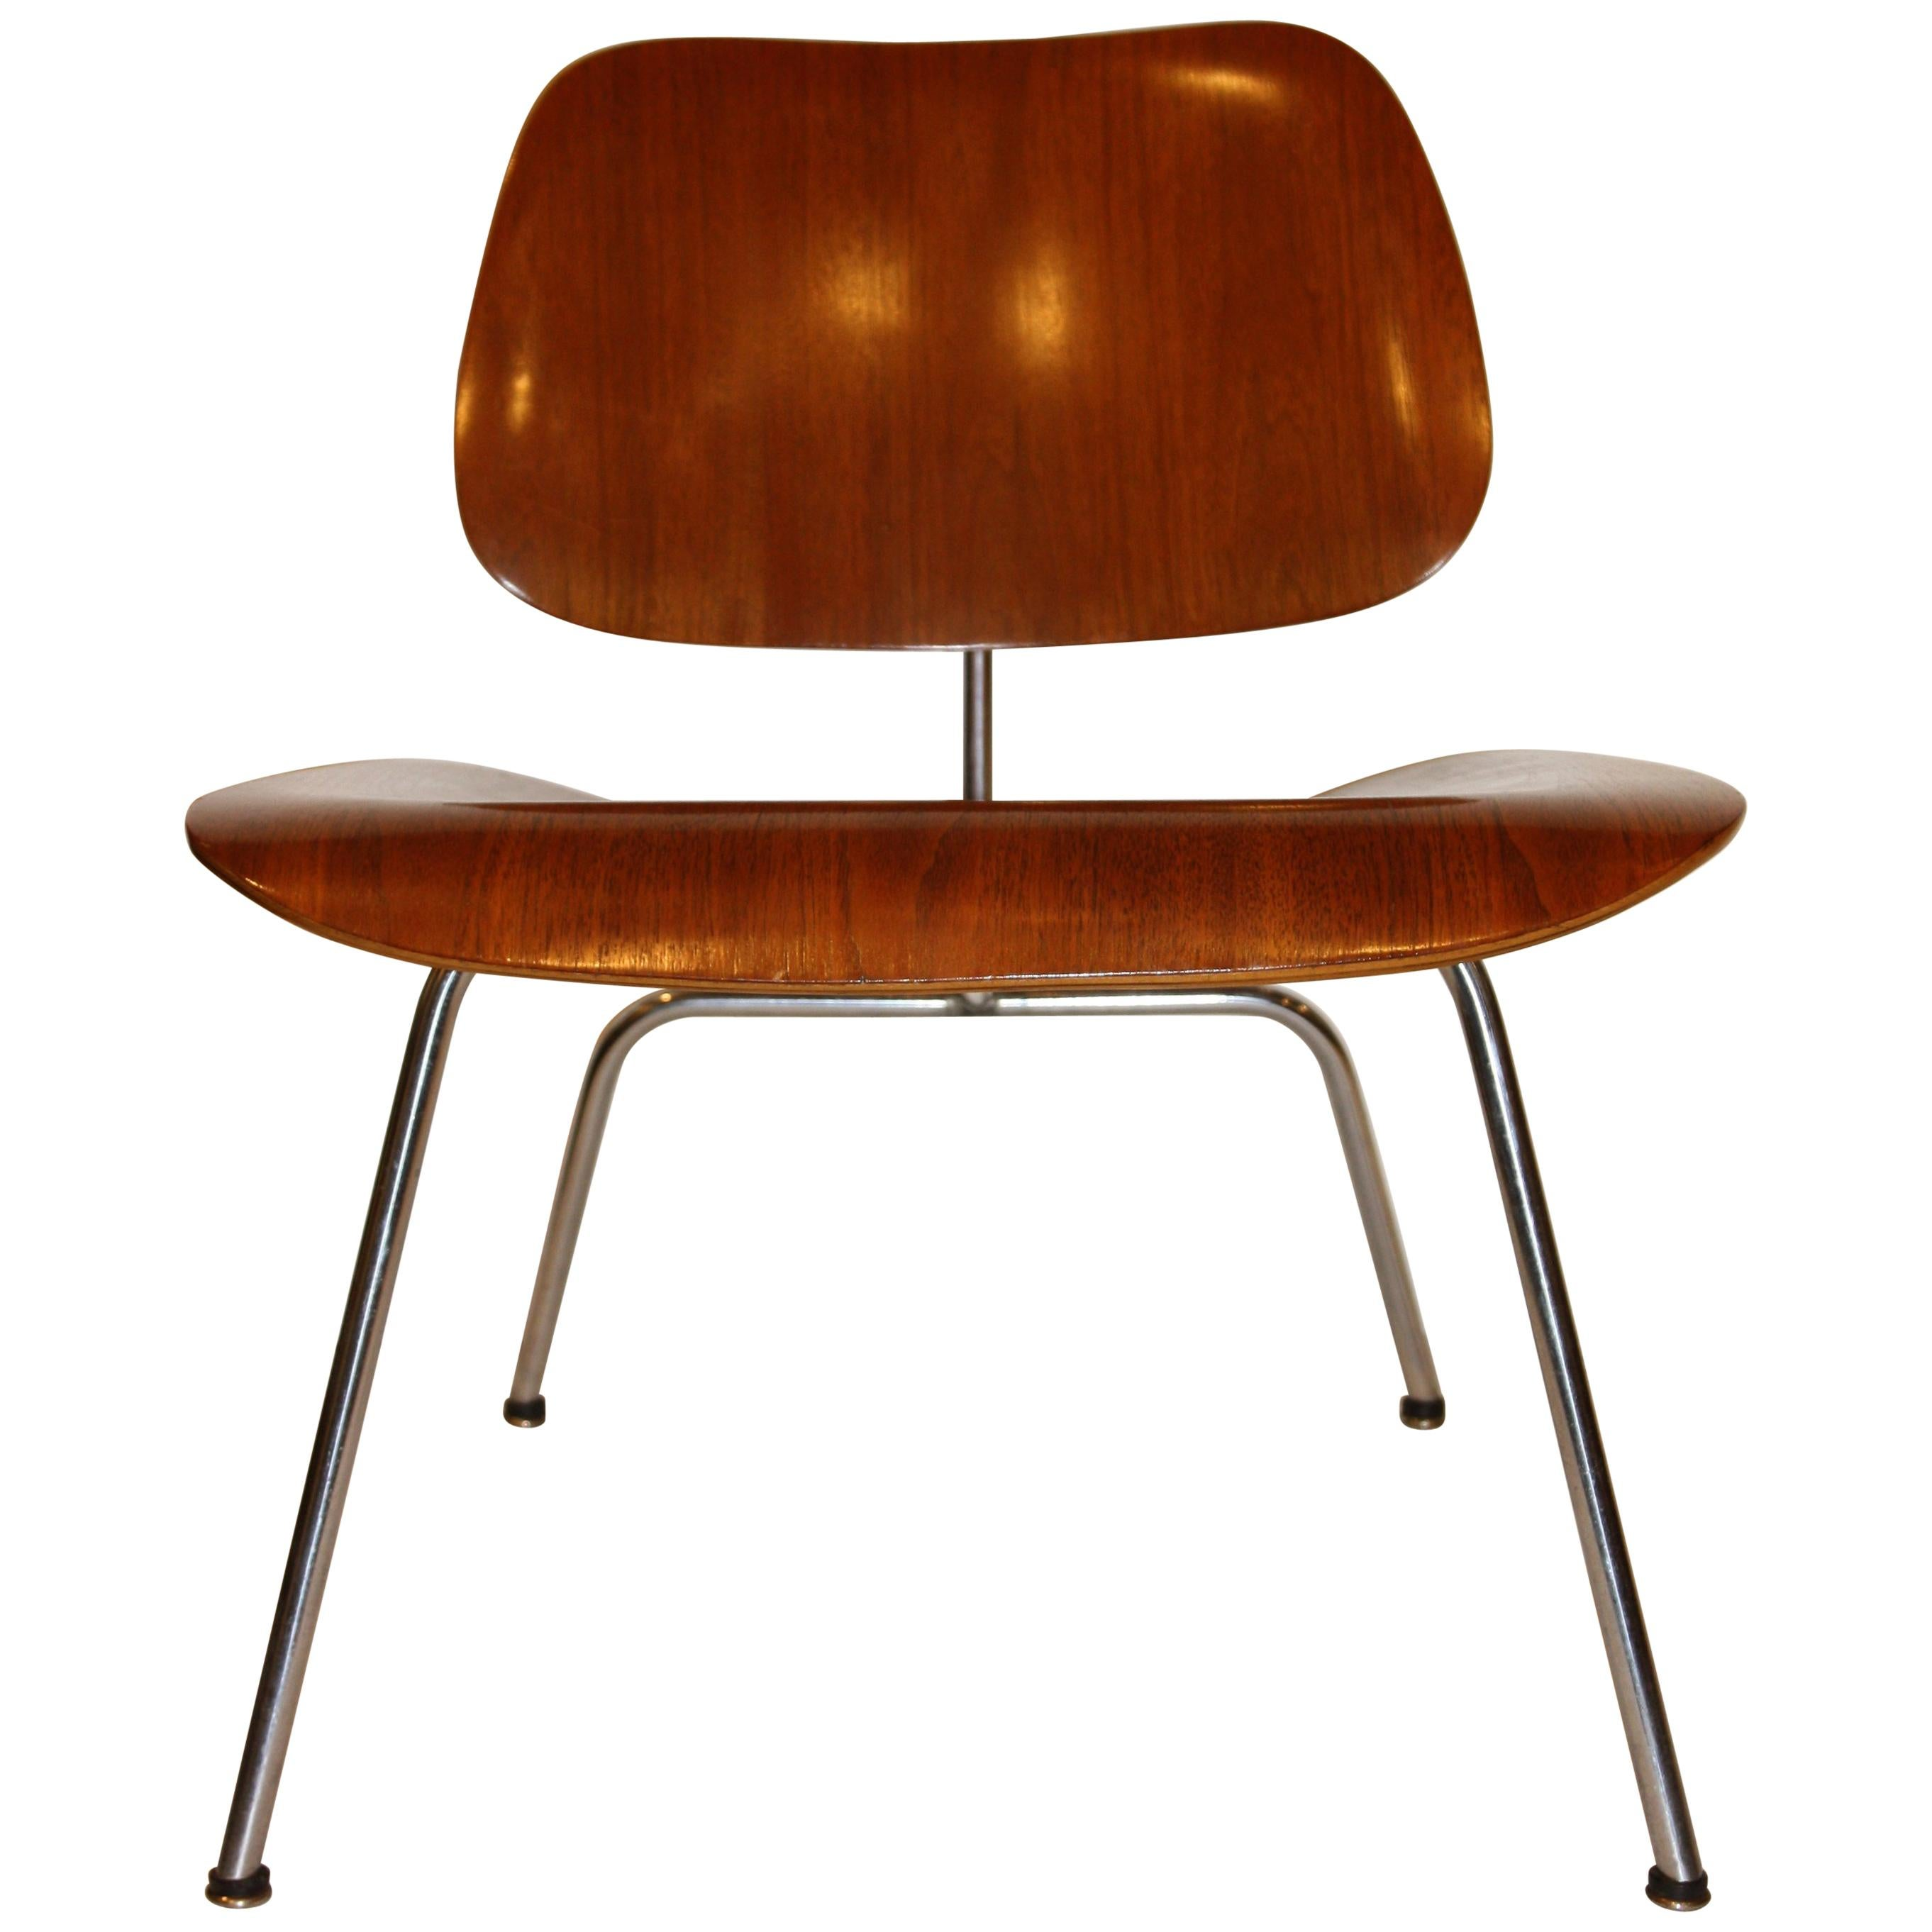 Eames Chair Repair Charles And Ray Eames Lounge Chairs 131 For Sale At 1stdibs